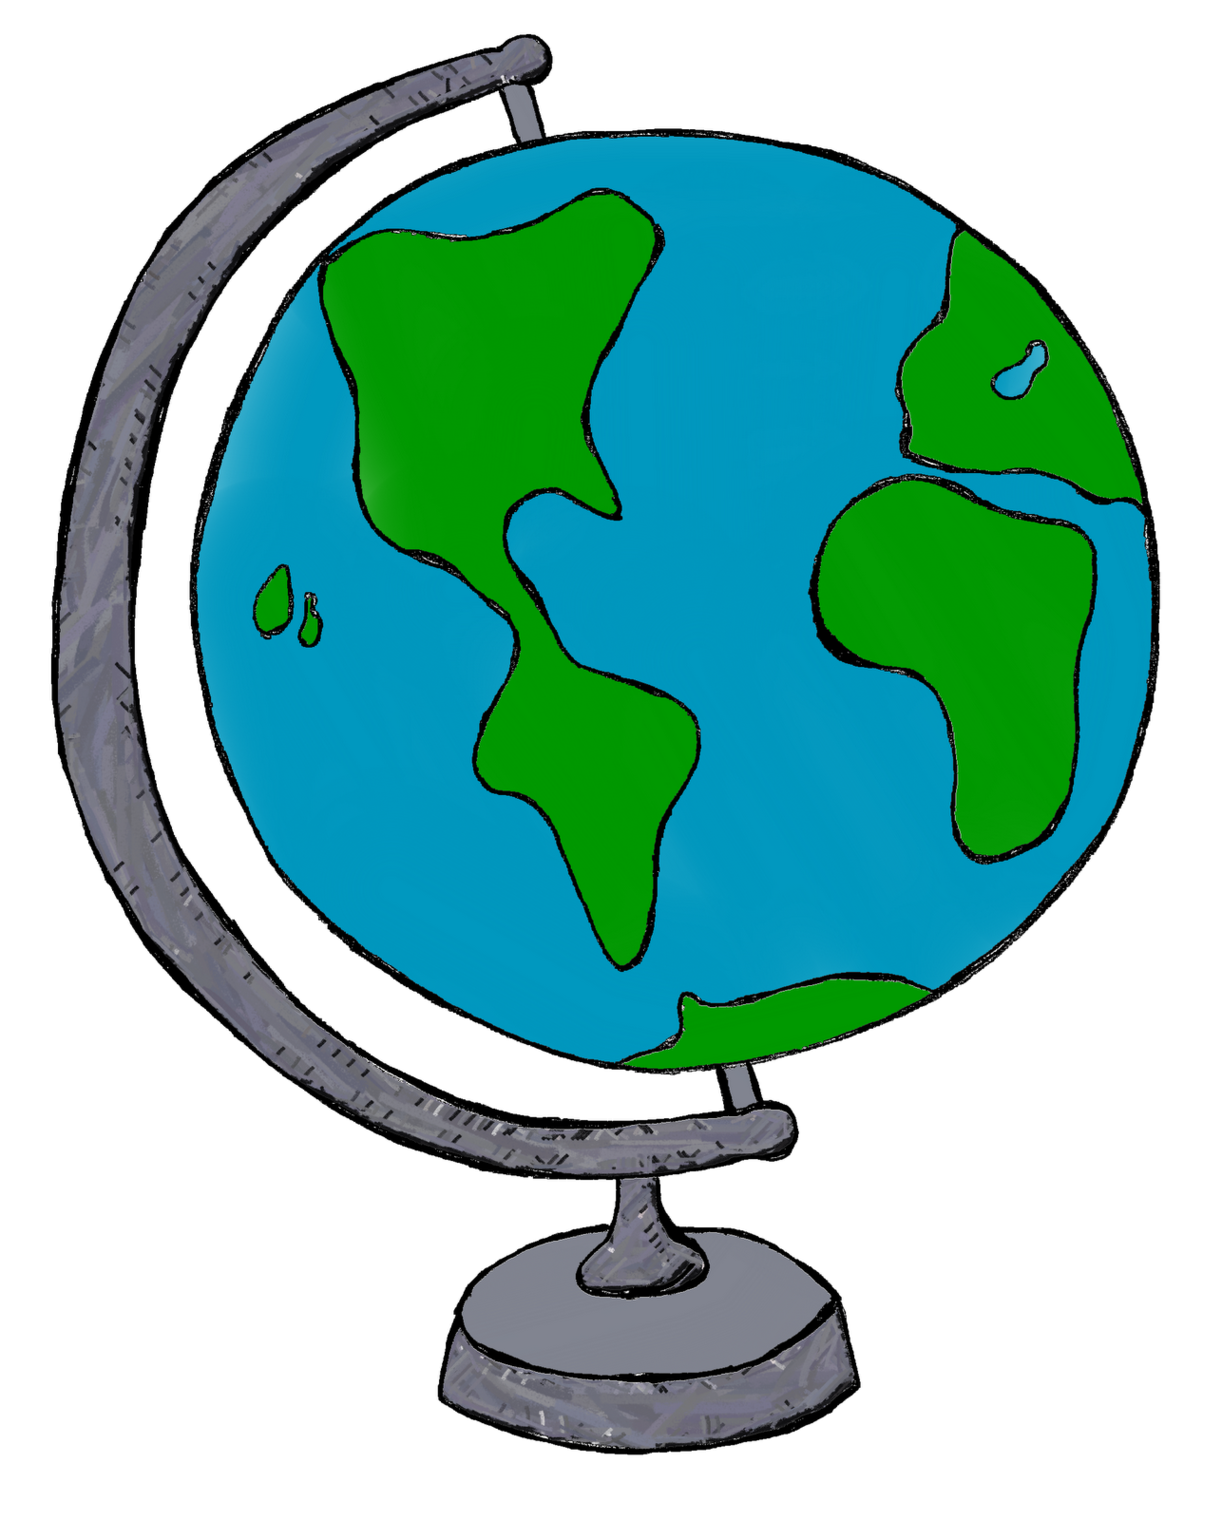 clip library Vision clipart globe world. Global at getdrawings com